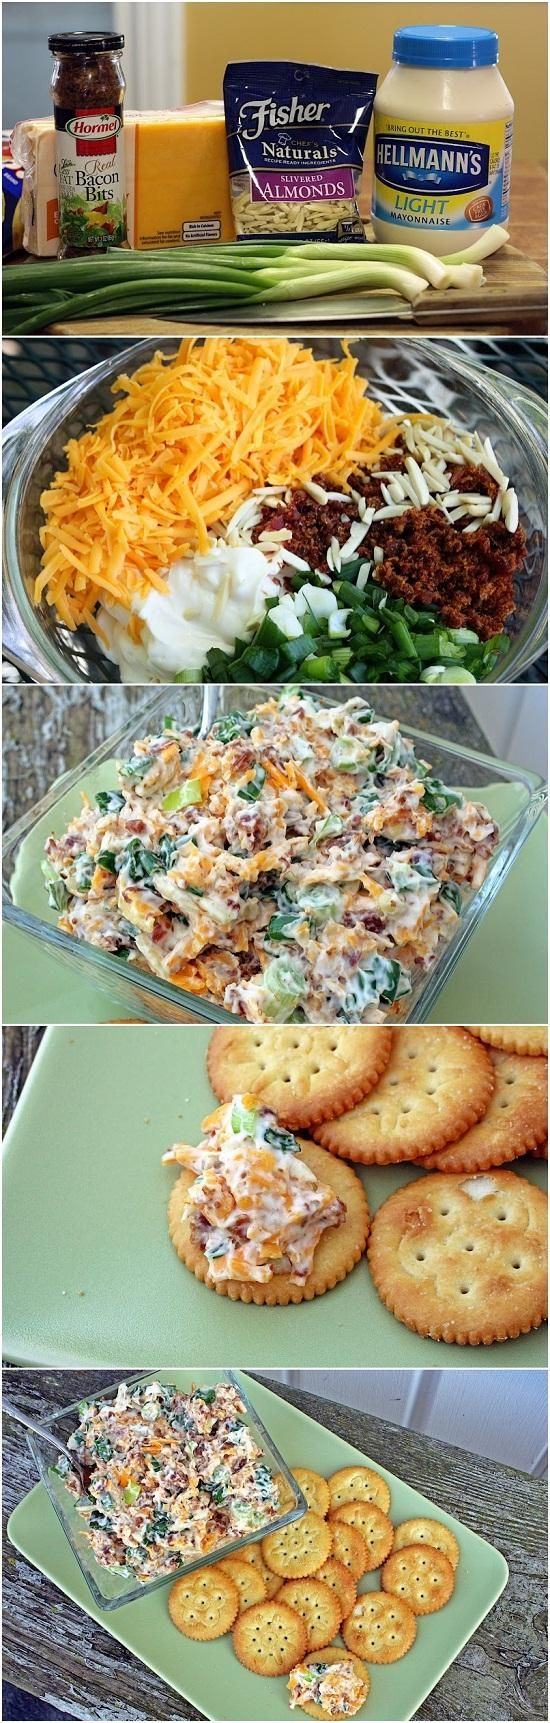 Neiman Marcus Dip -      5 – 6 green onions, chopped     8 oz. cheddar cheese, shredded     1 1/2 cups mayonnaise     1 jar Hormel Real Bacon Bits     1 pkg. slivered almonds